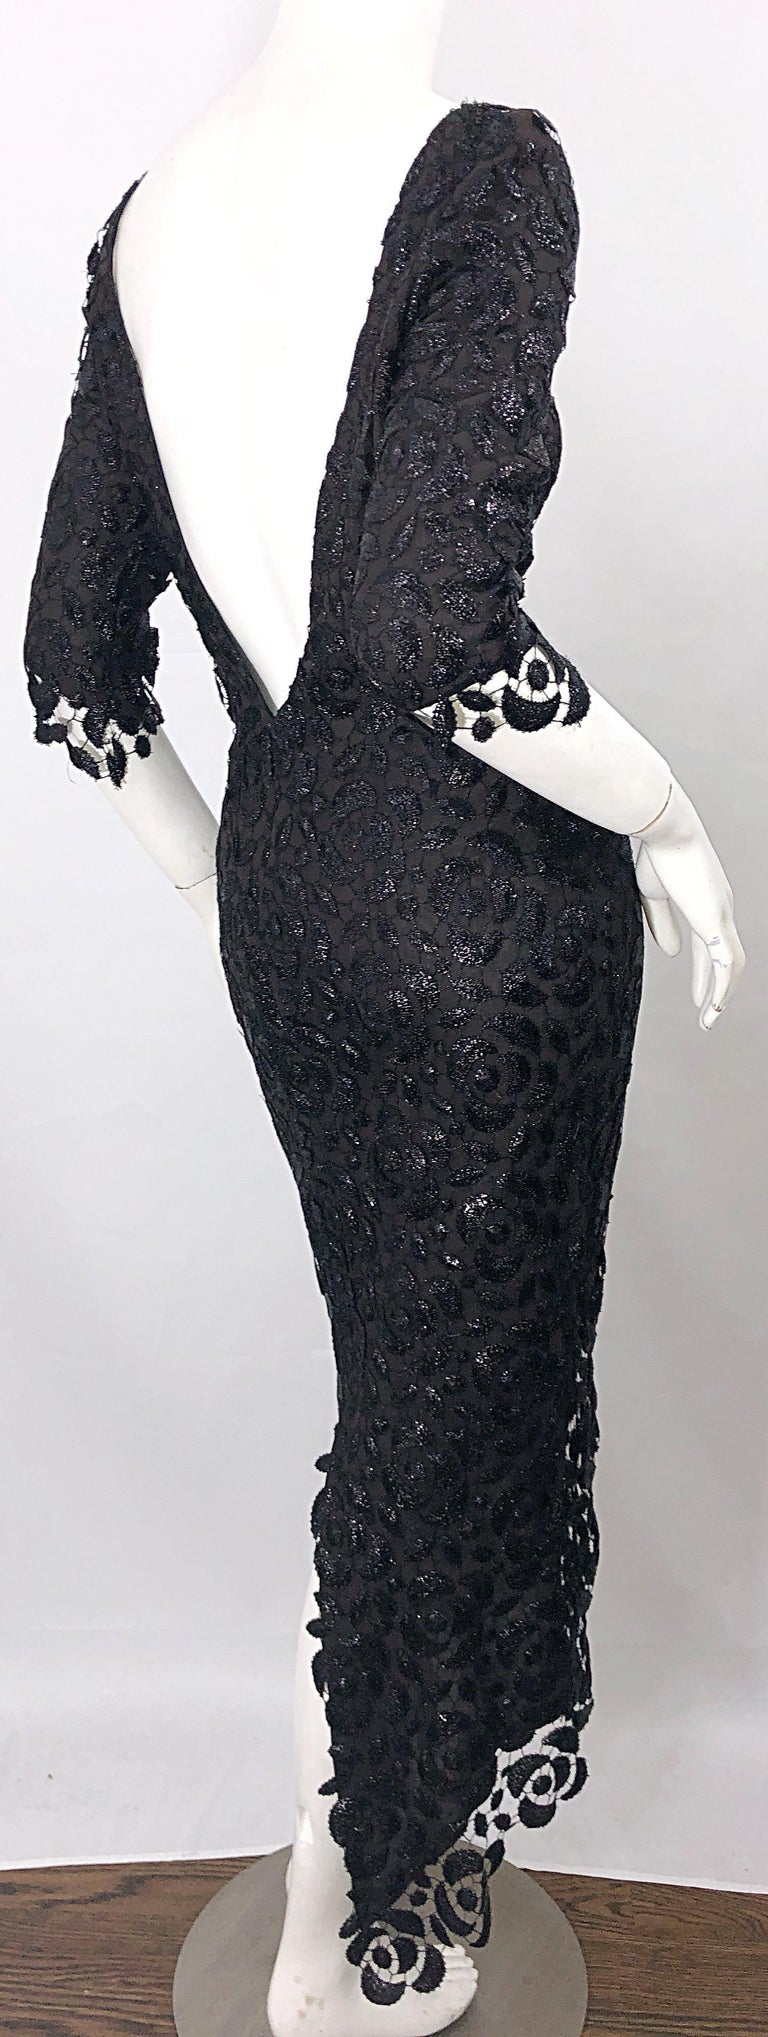 Stunning $10k Vintage Halston Black 3/4 Sleeves Silk Lace Crochet Sz 4 6 Dress For Sale 4